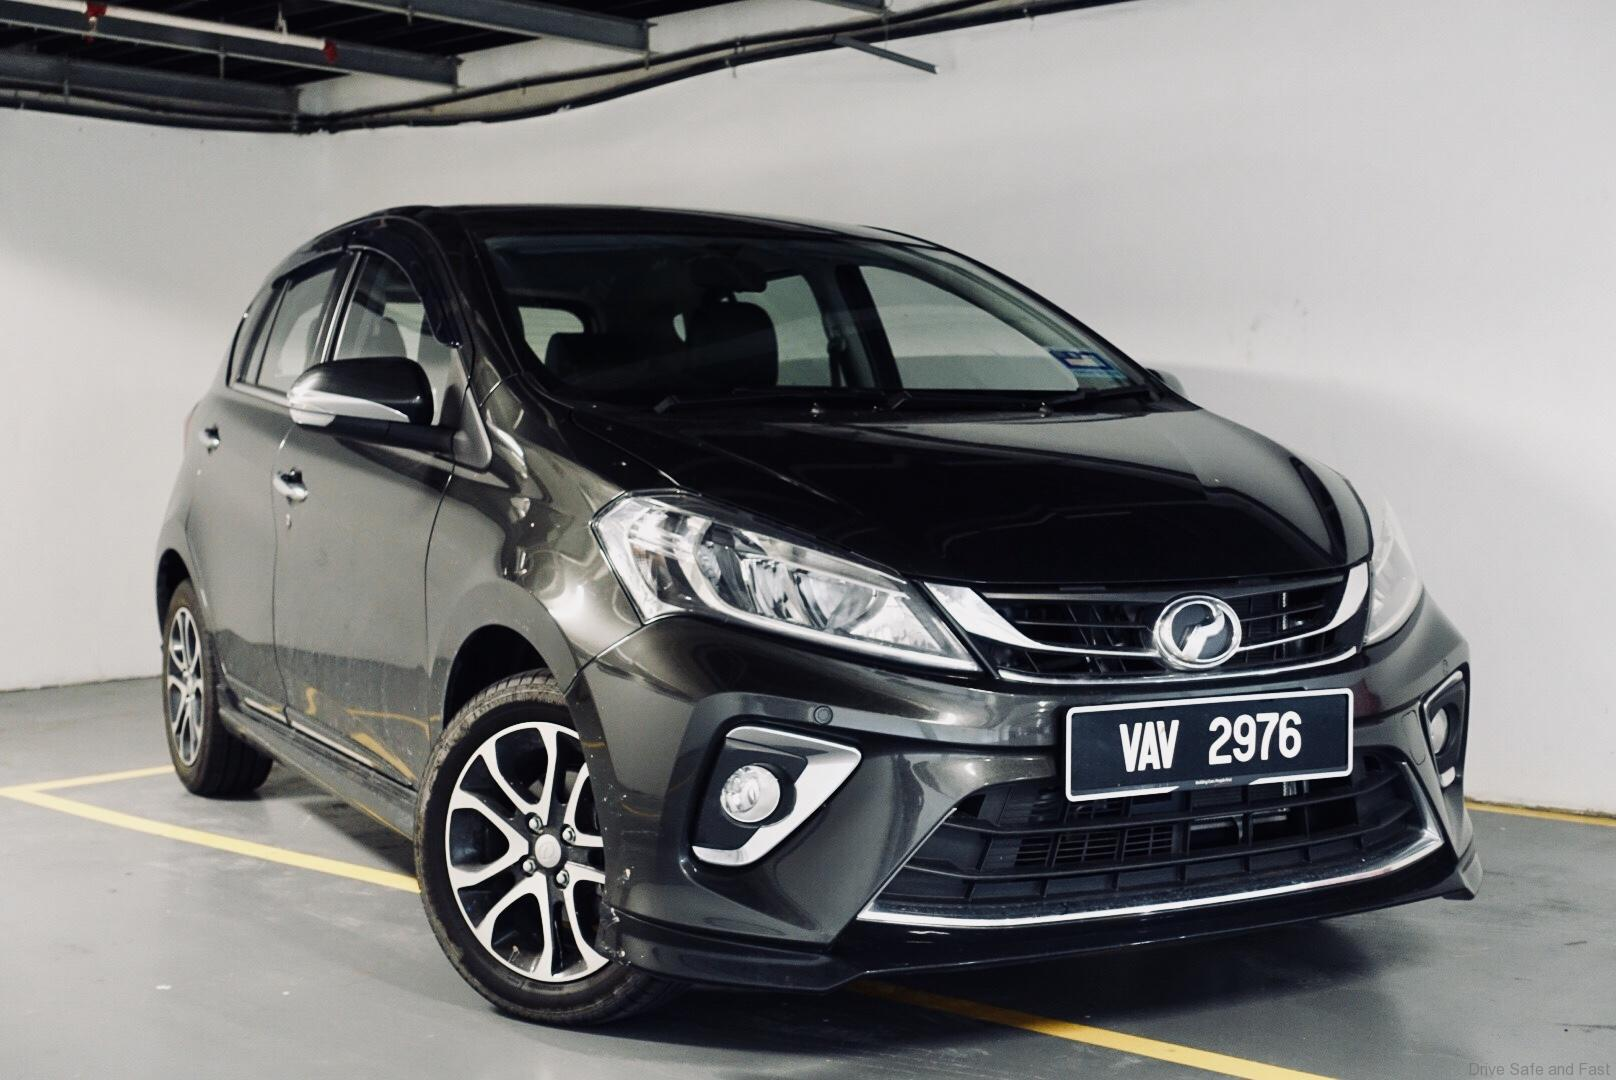 Perodua Myvi 1 5 High Spec Review: One Giant Leap | DSF my